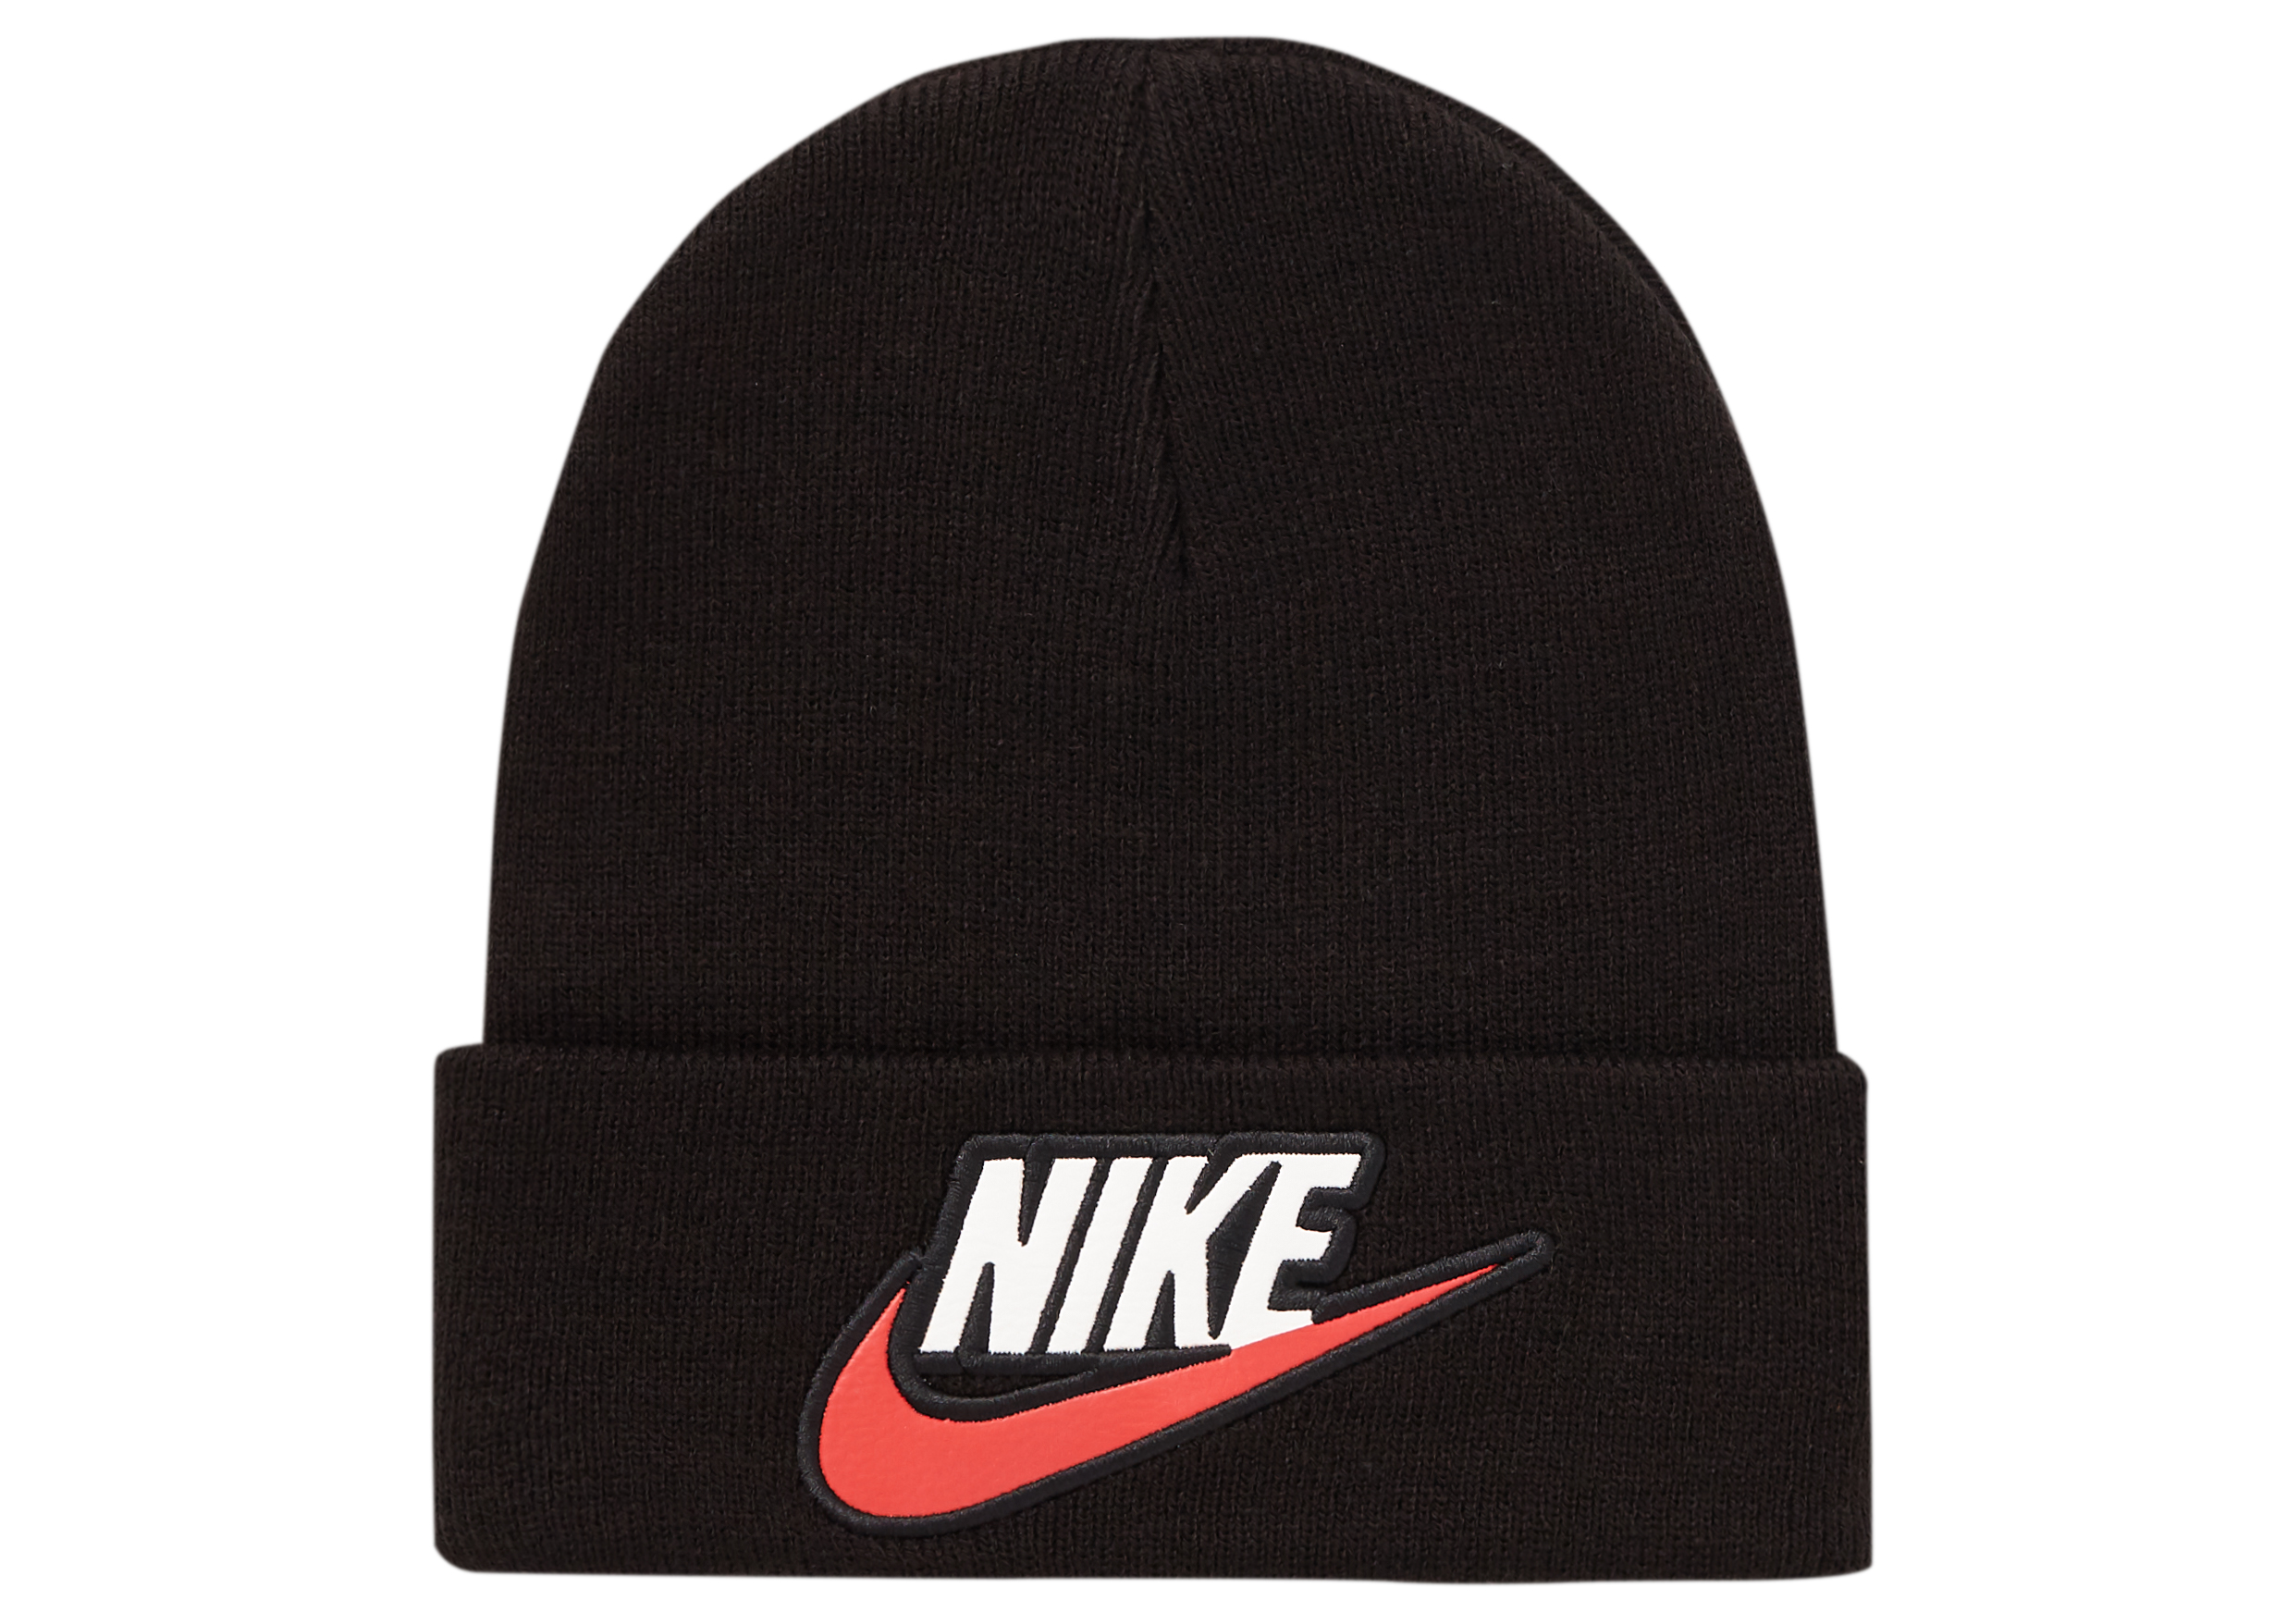 finest selection 409ca c7be4 ... for supreme nike beanie black 3393f 36847 discount code for supreme nike  beanie black 3393f 36847  closeout nike beanie kinder obsidian metallic  silver ...